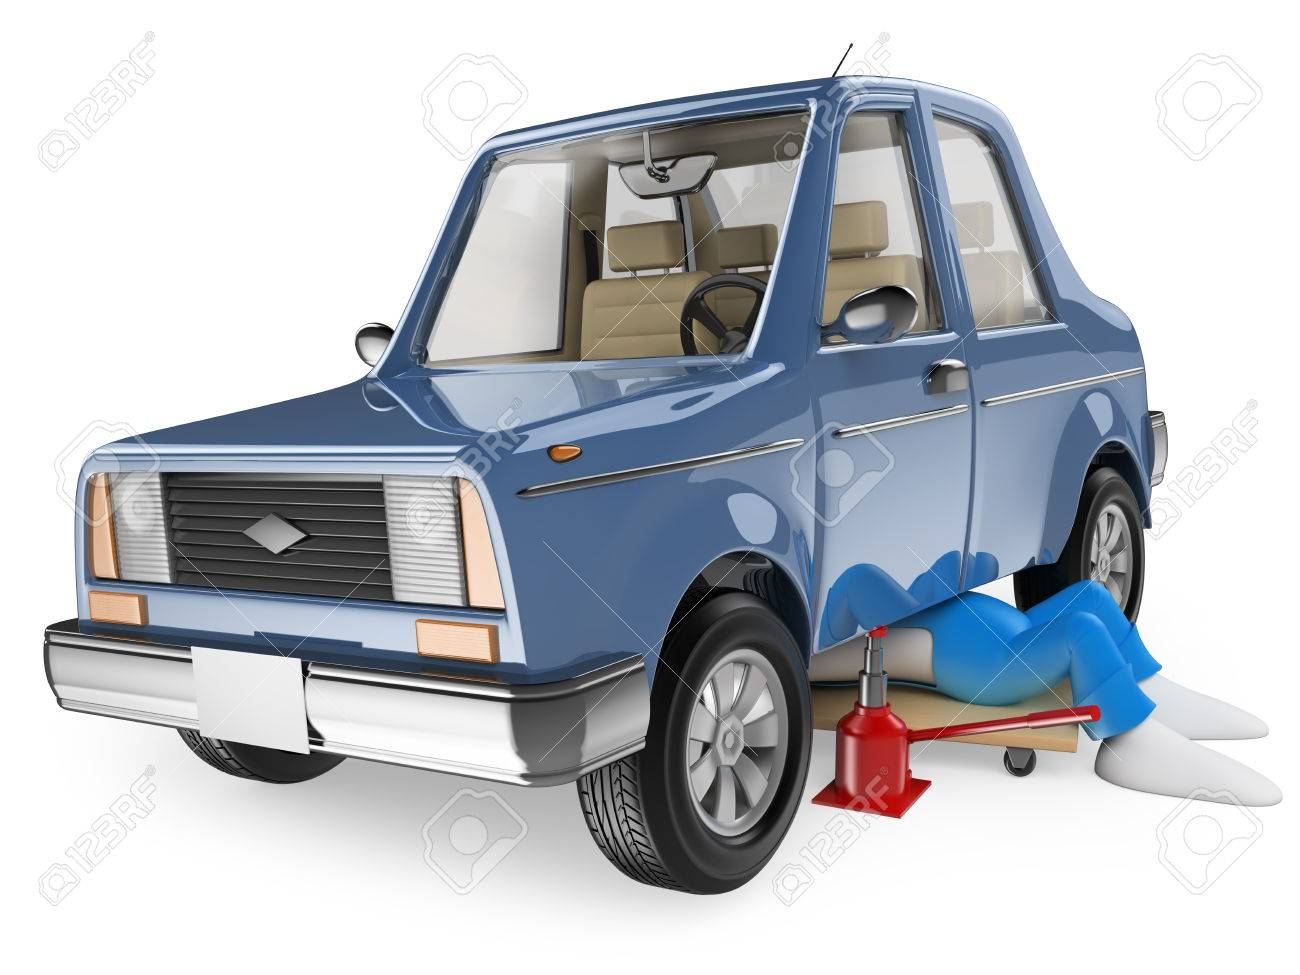 3d white people. Mechanic repairing a car. Isolated white background. Stock Photo - 28470653